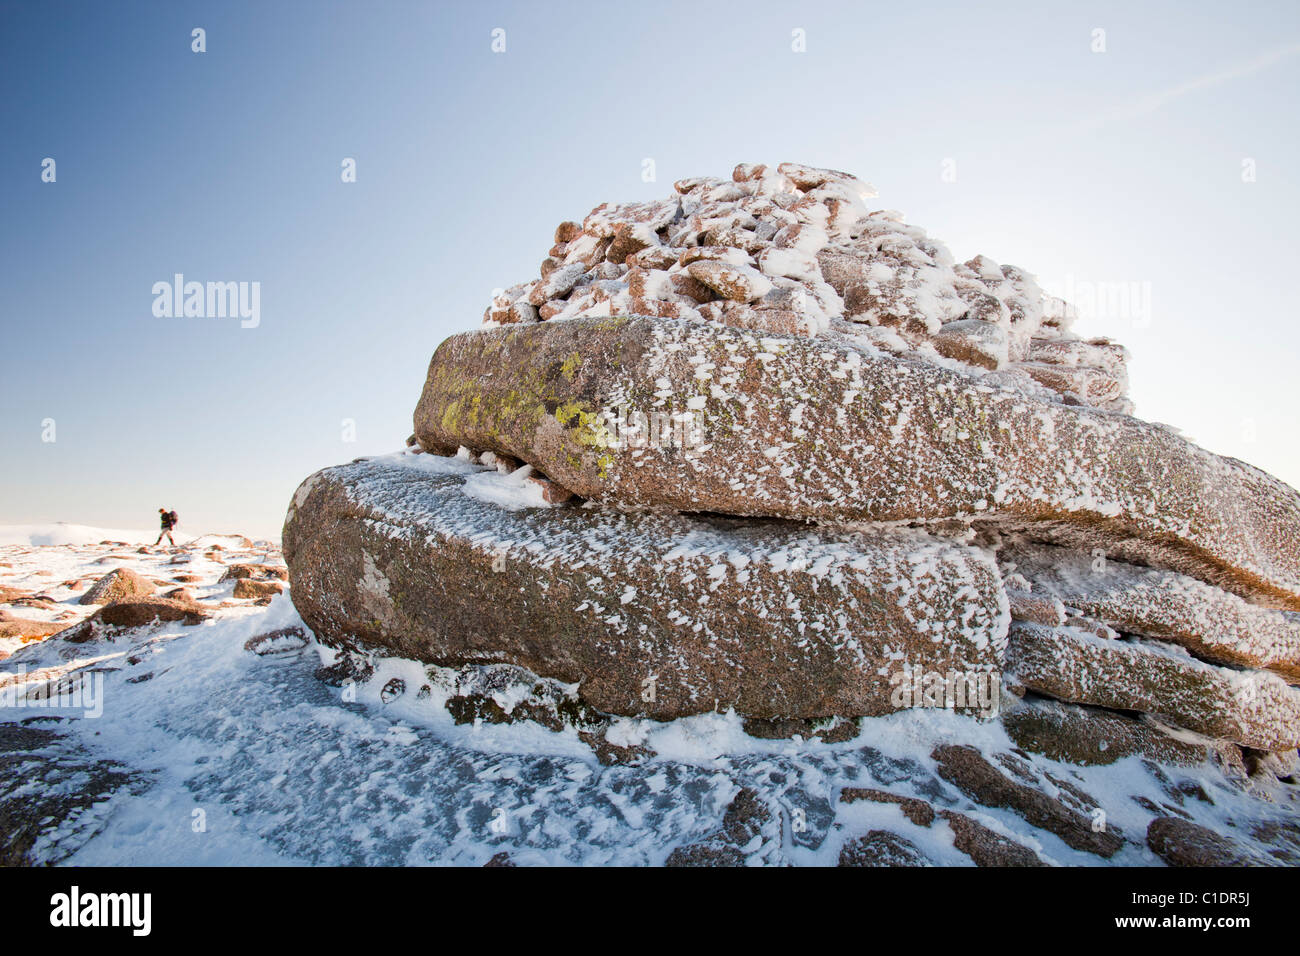 A cairn covered in hoare frost on the Cairngorm Plateau, Scotland, UK, with a mountaineer in the background. - Stock Image